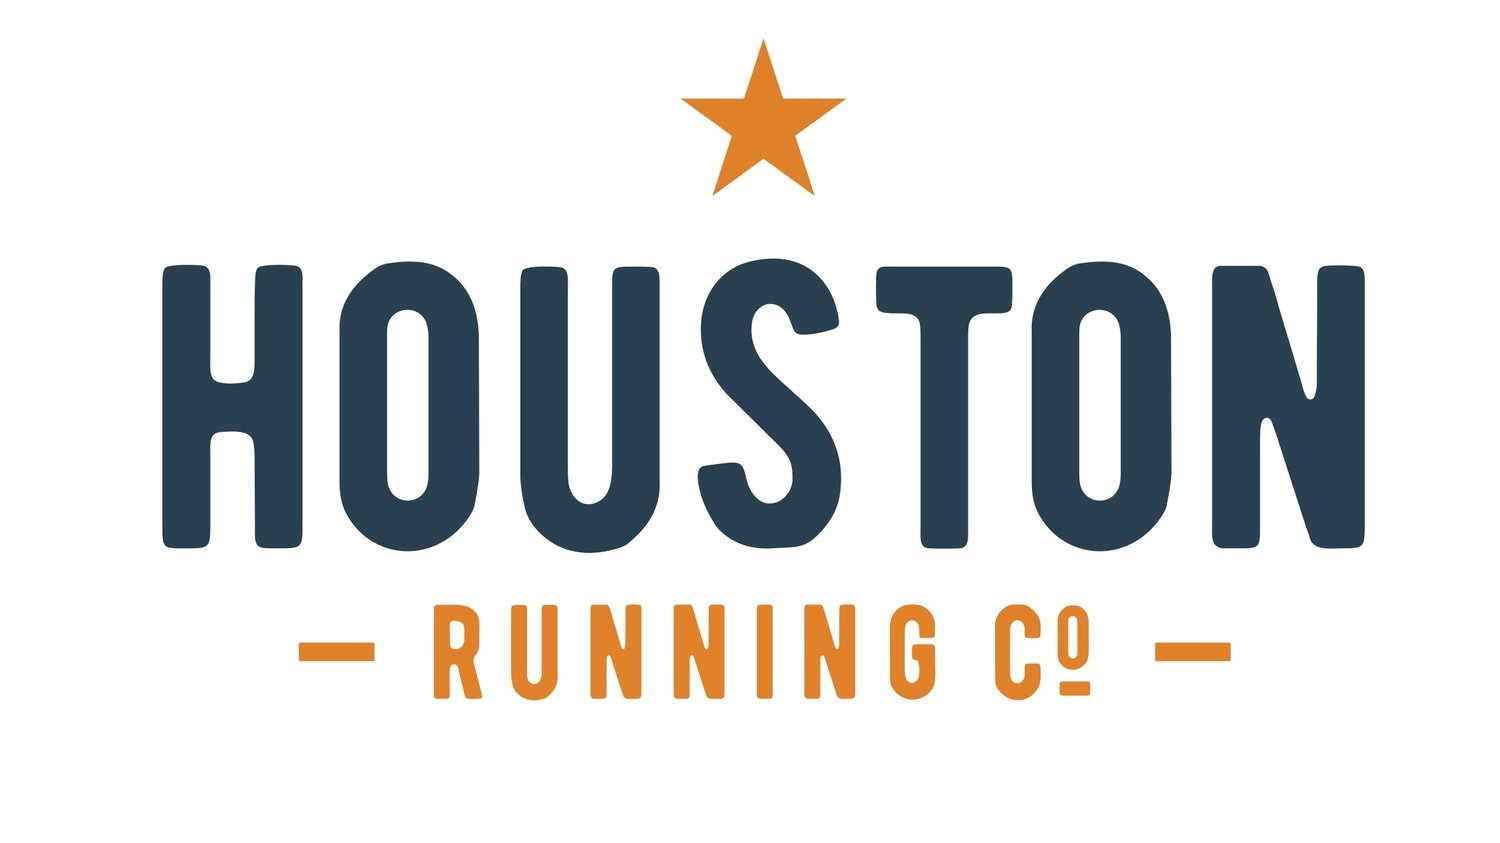 HOUSTON RUNNING COMPANY